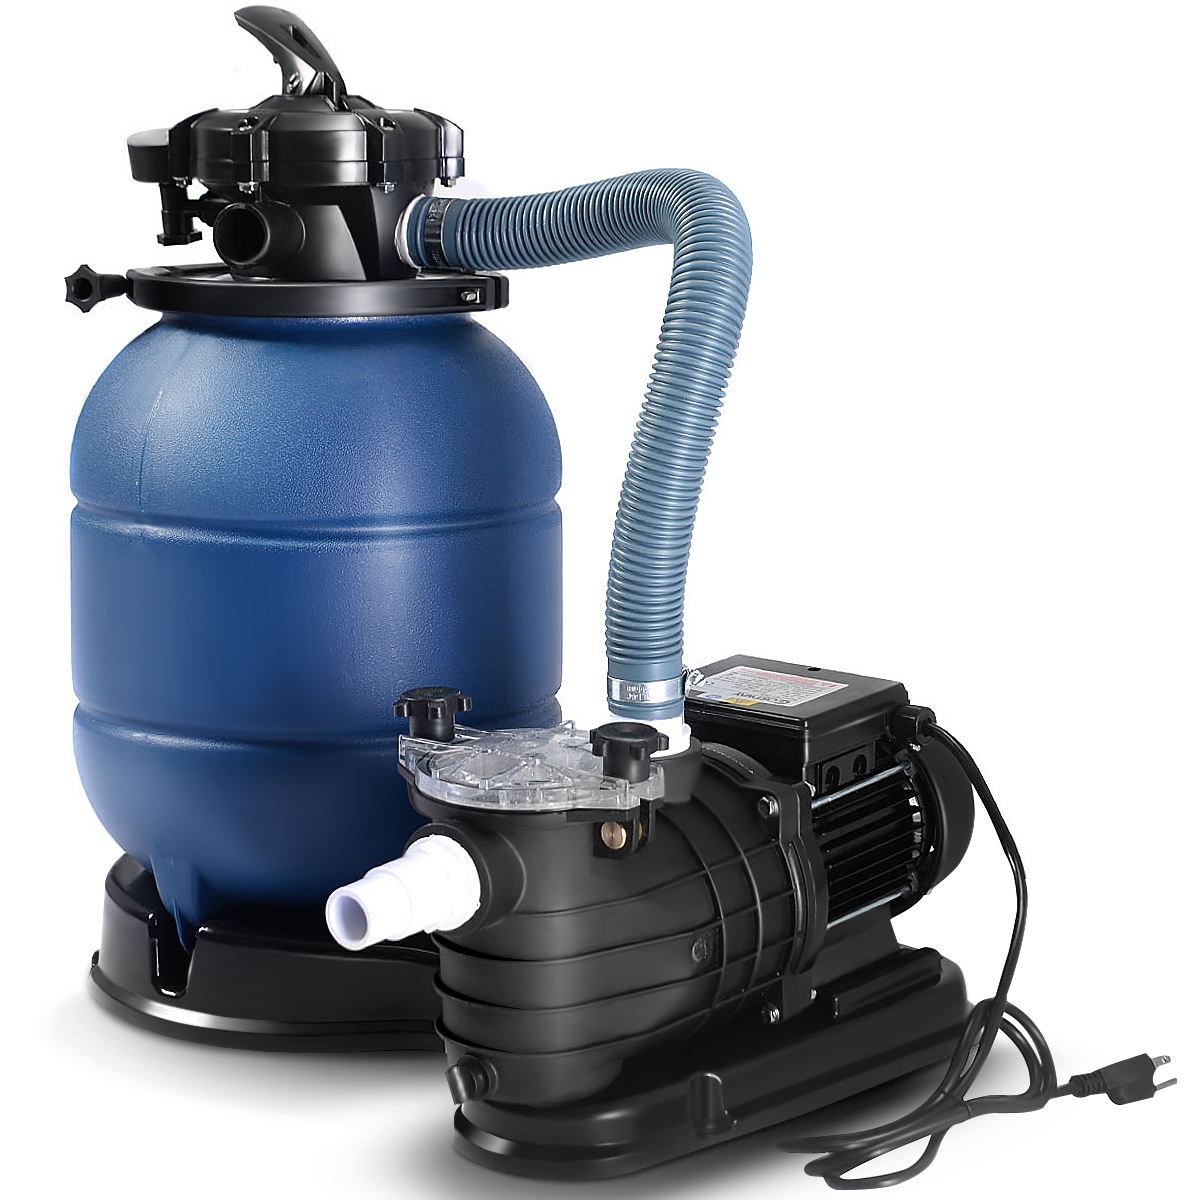 Pool Filter Pump Pressure Too High Costway New Pro 2450gph 13 Sand Filter Above Ground 10000gal Swimming Pool Pump